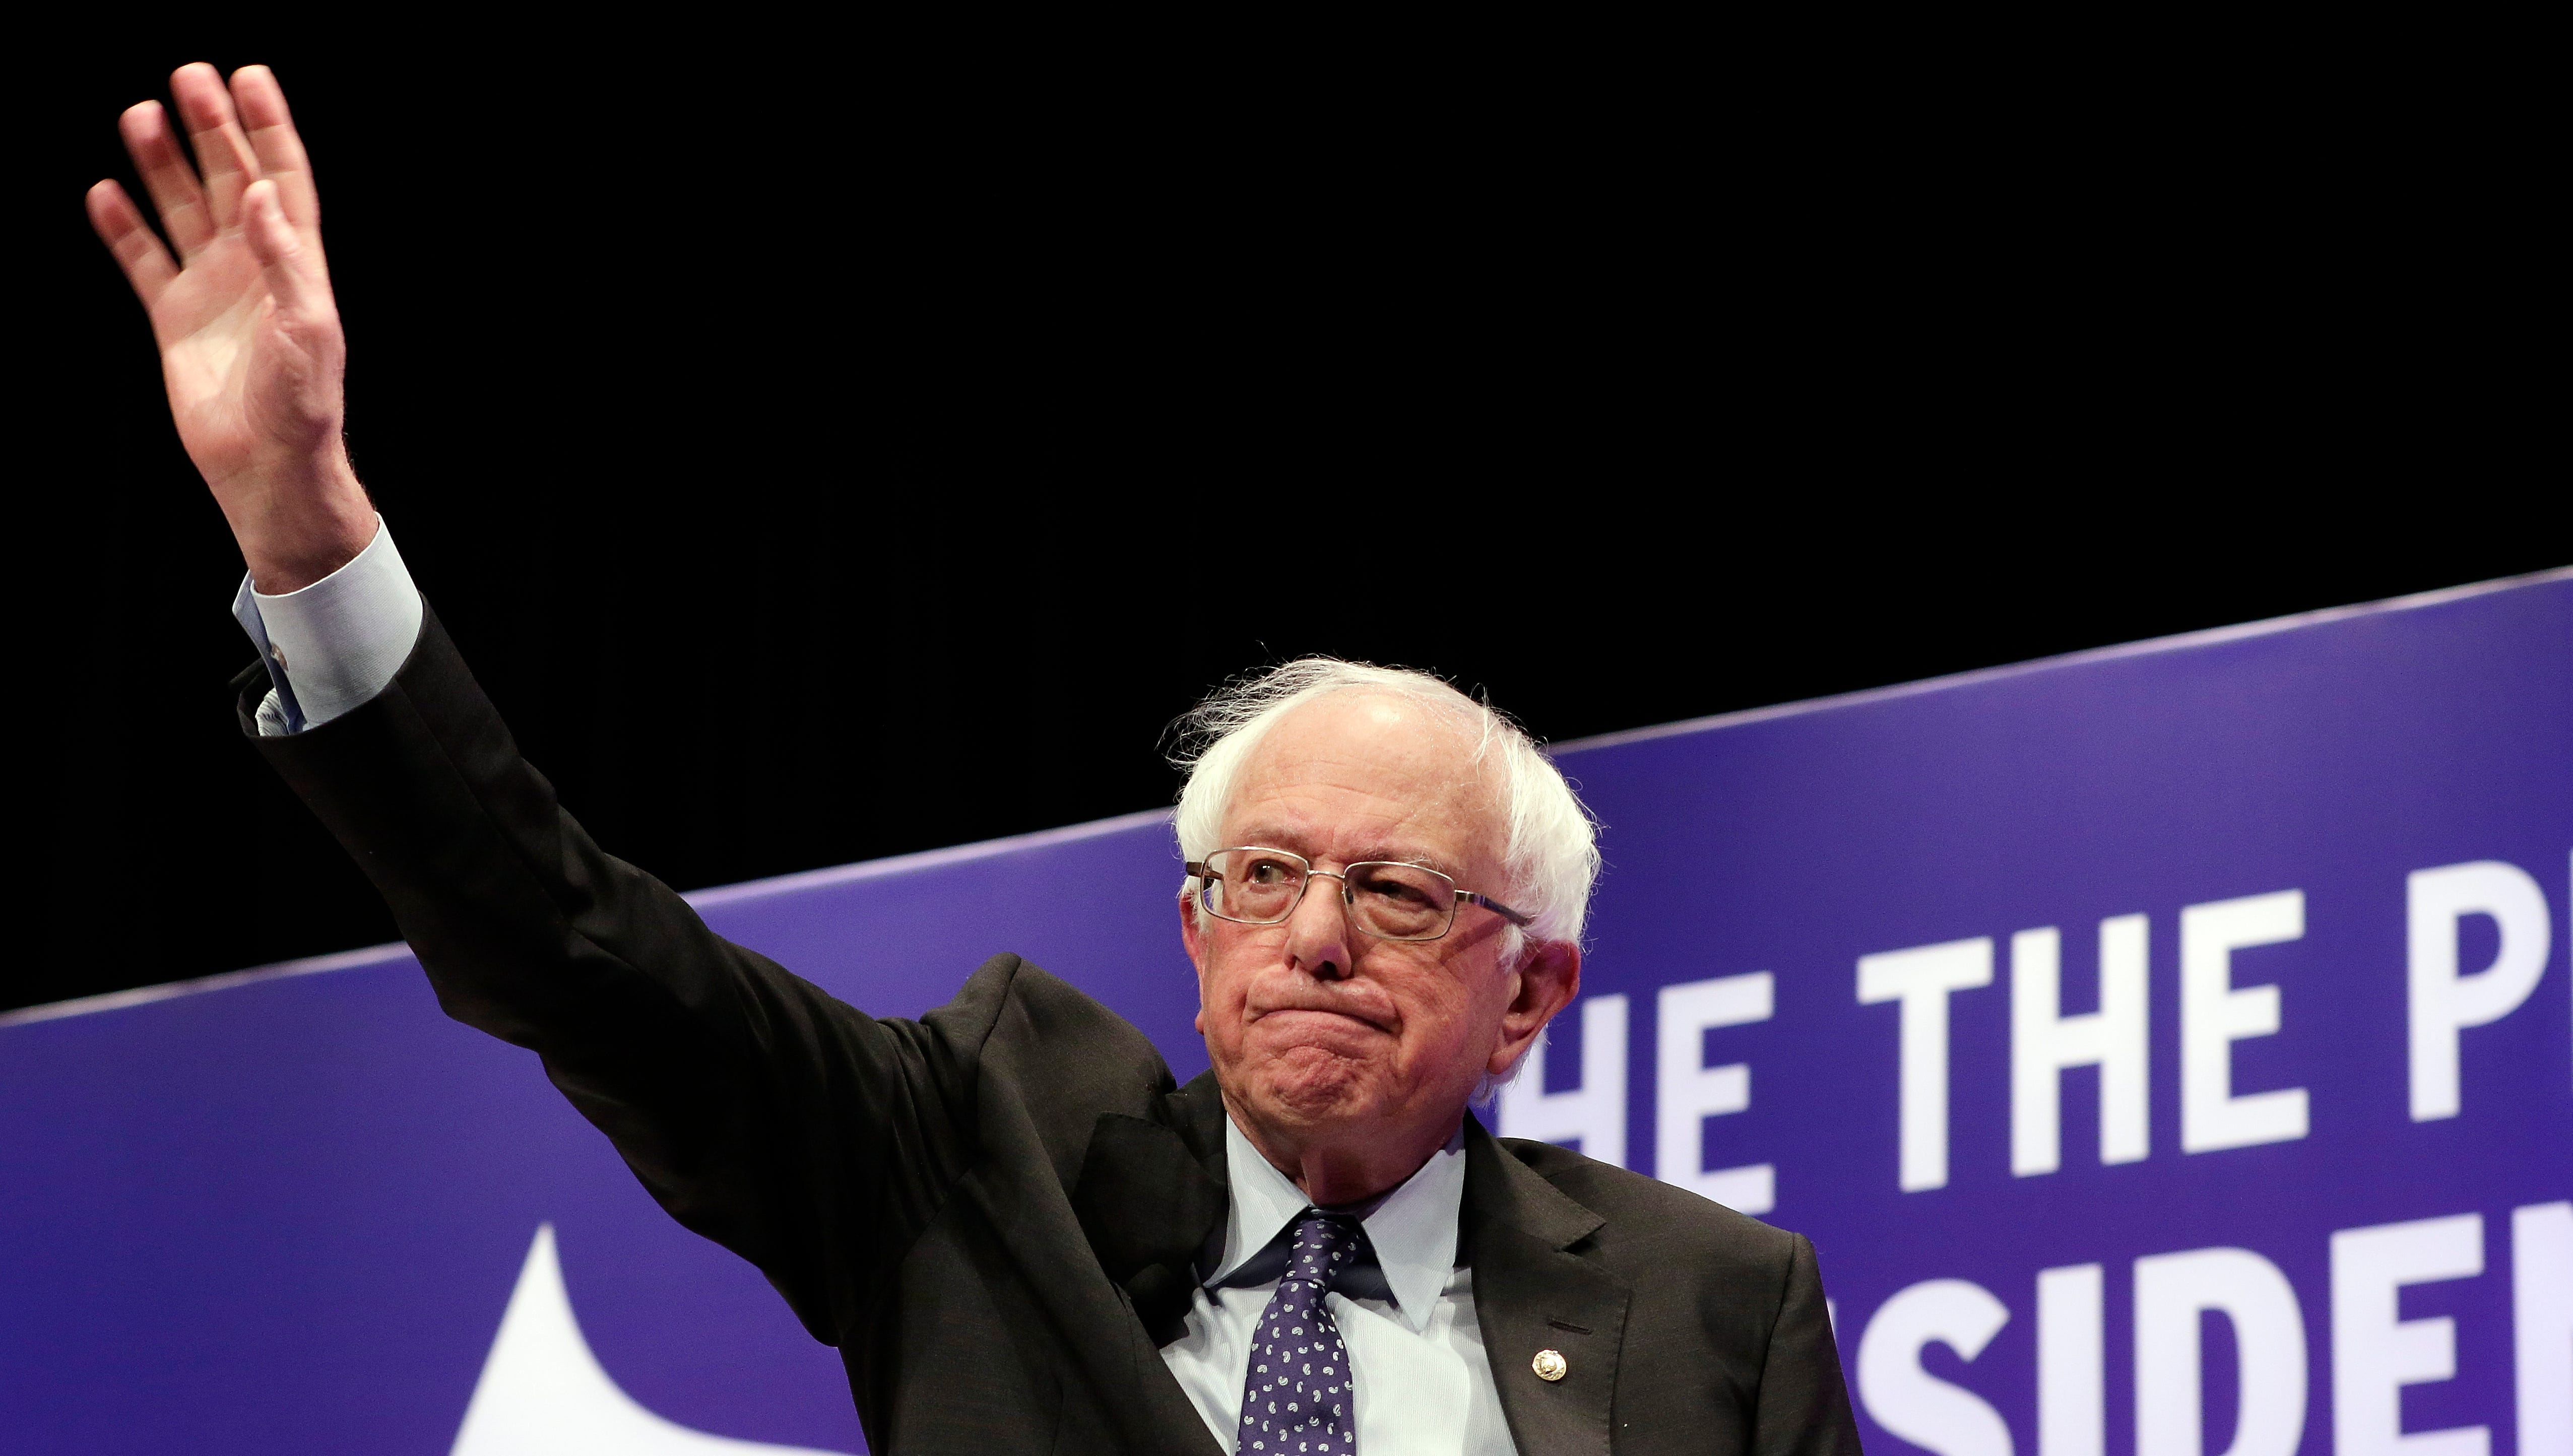 Democratic presidential candidate Sen. Bernie Sanders, I-Vt., waves as he attends a presidential forum held by She The People on the Texas State University campus Wednesday, April 24, 2019, in Houston.